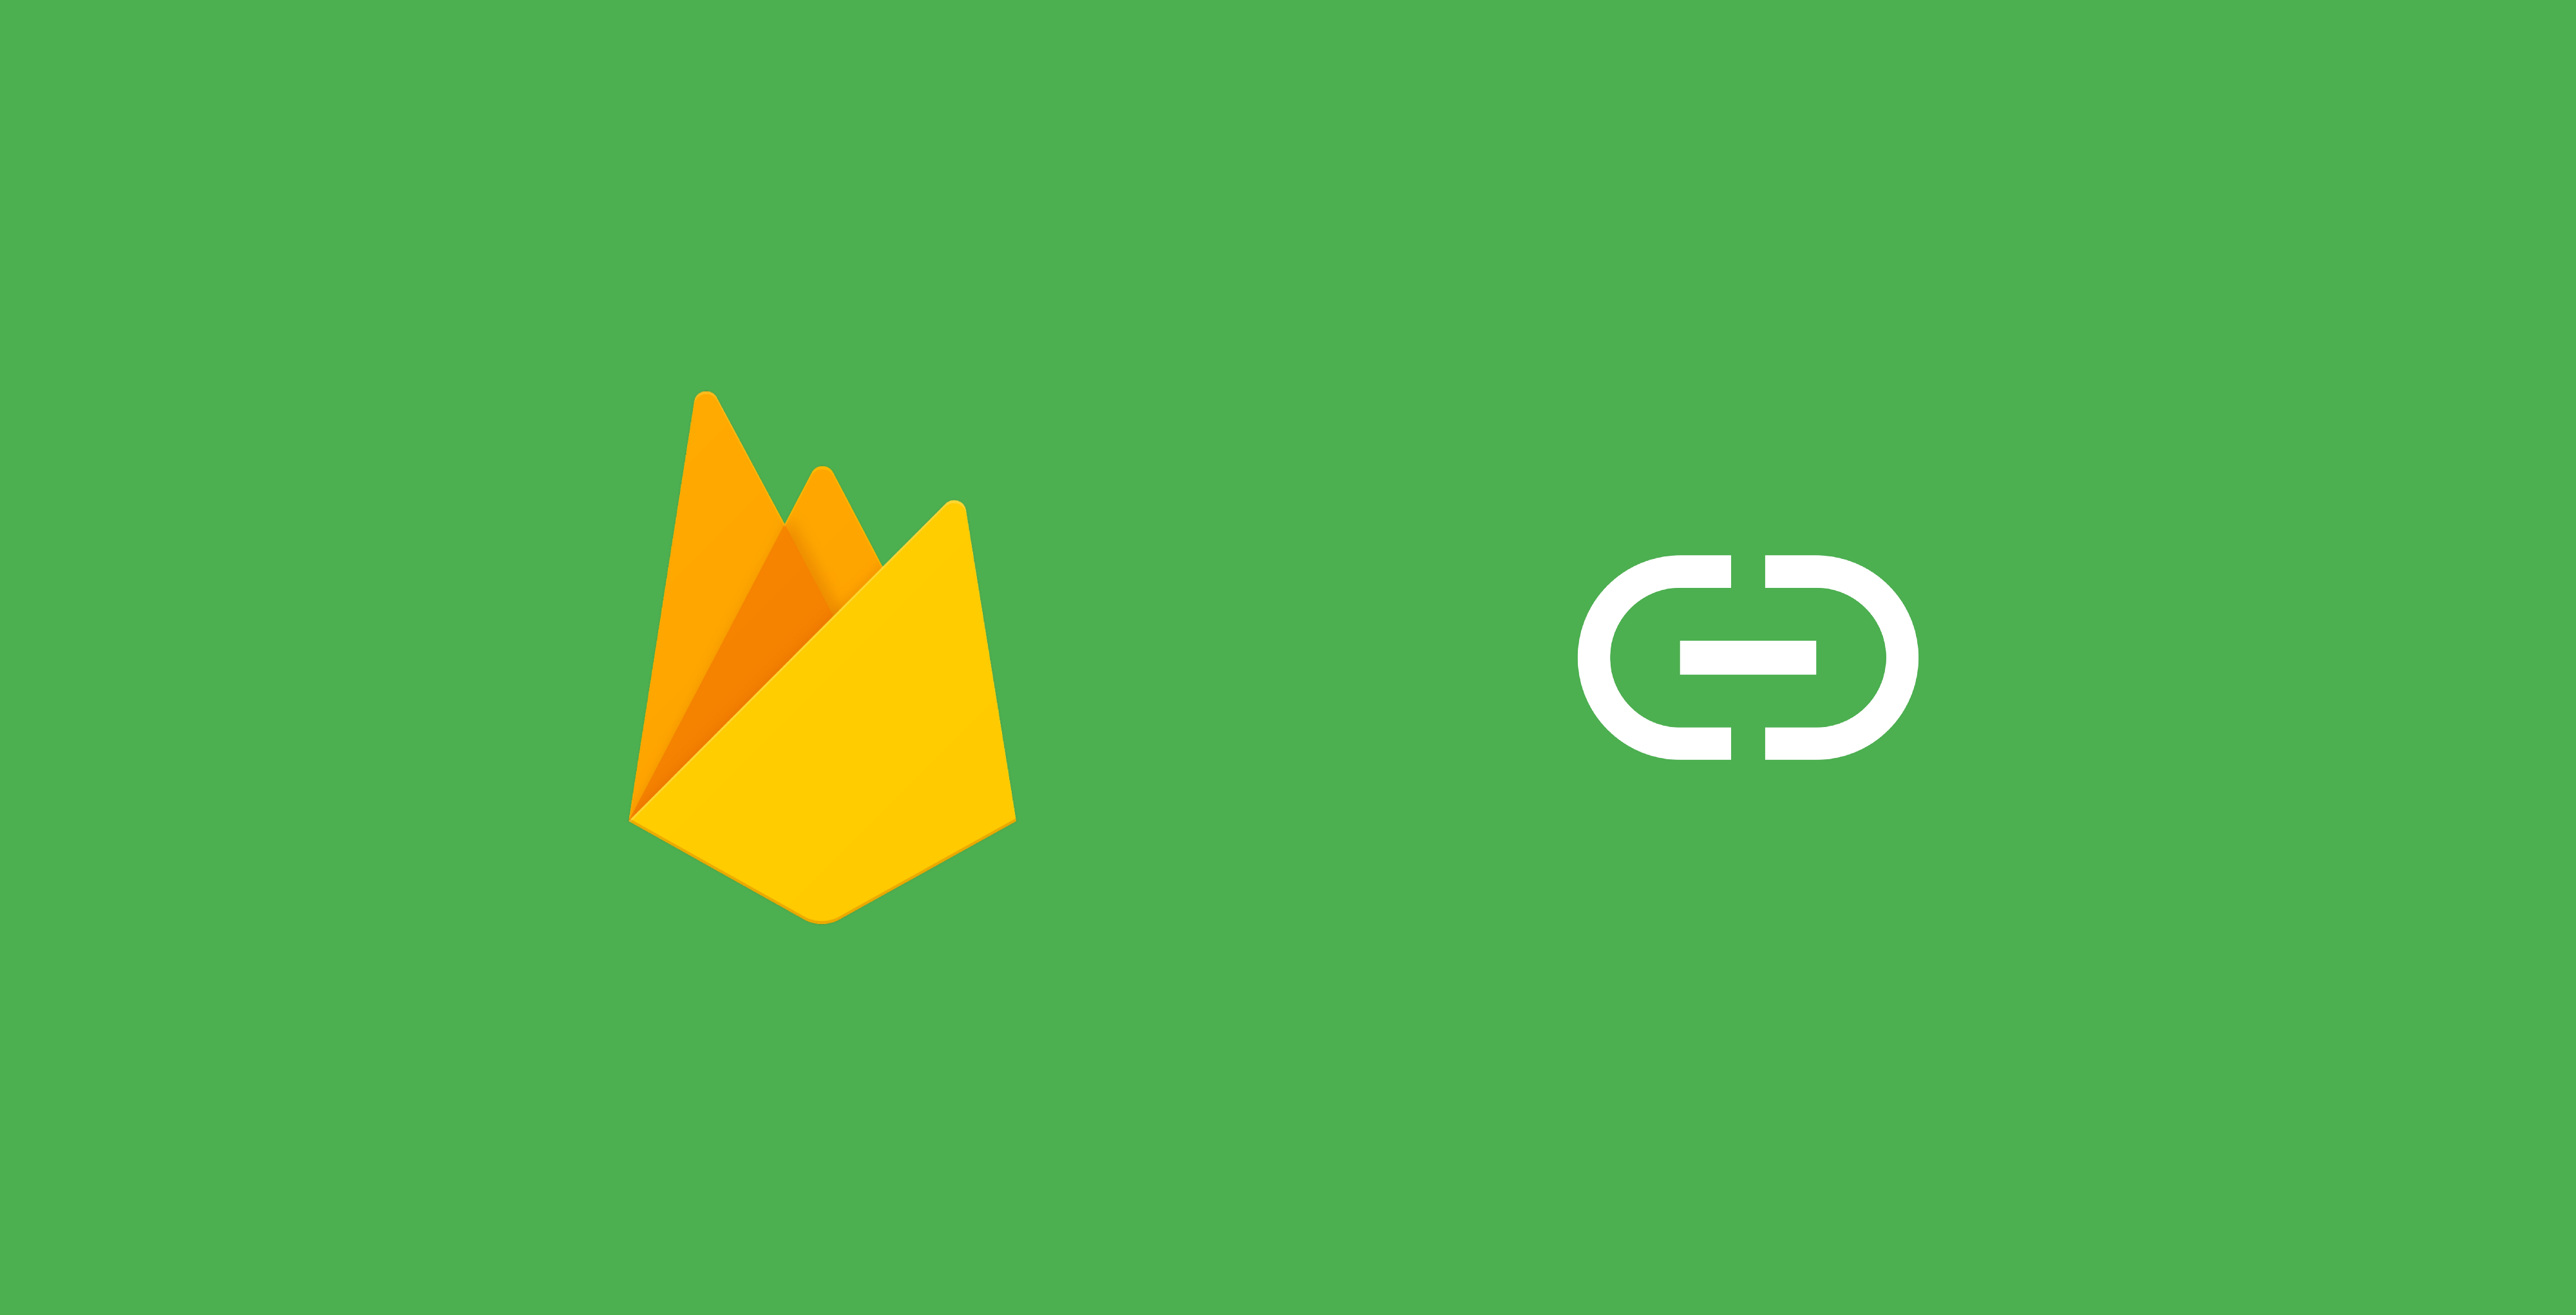 Exploring Firebase on Android: Dynamic Links - Exploring